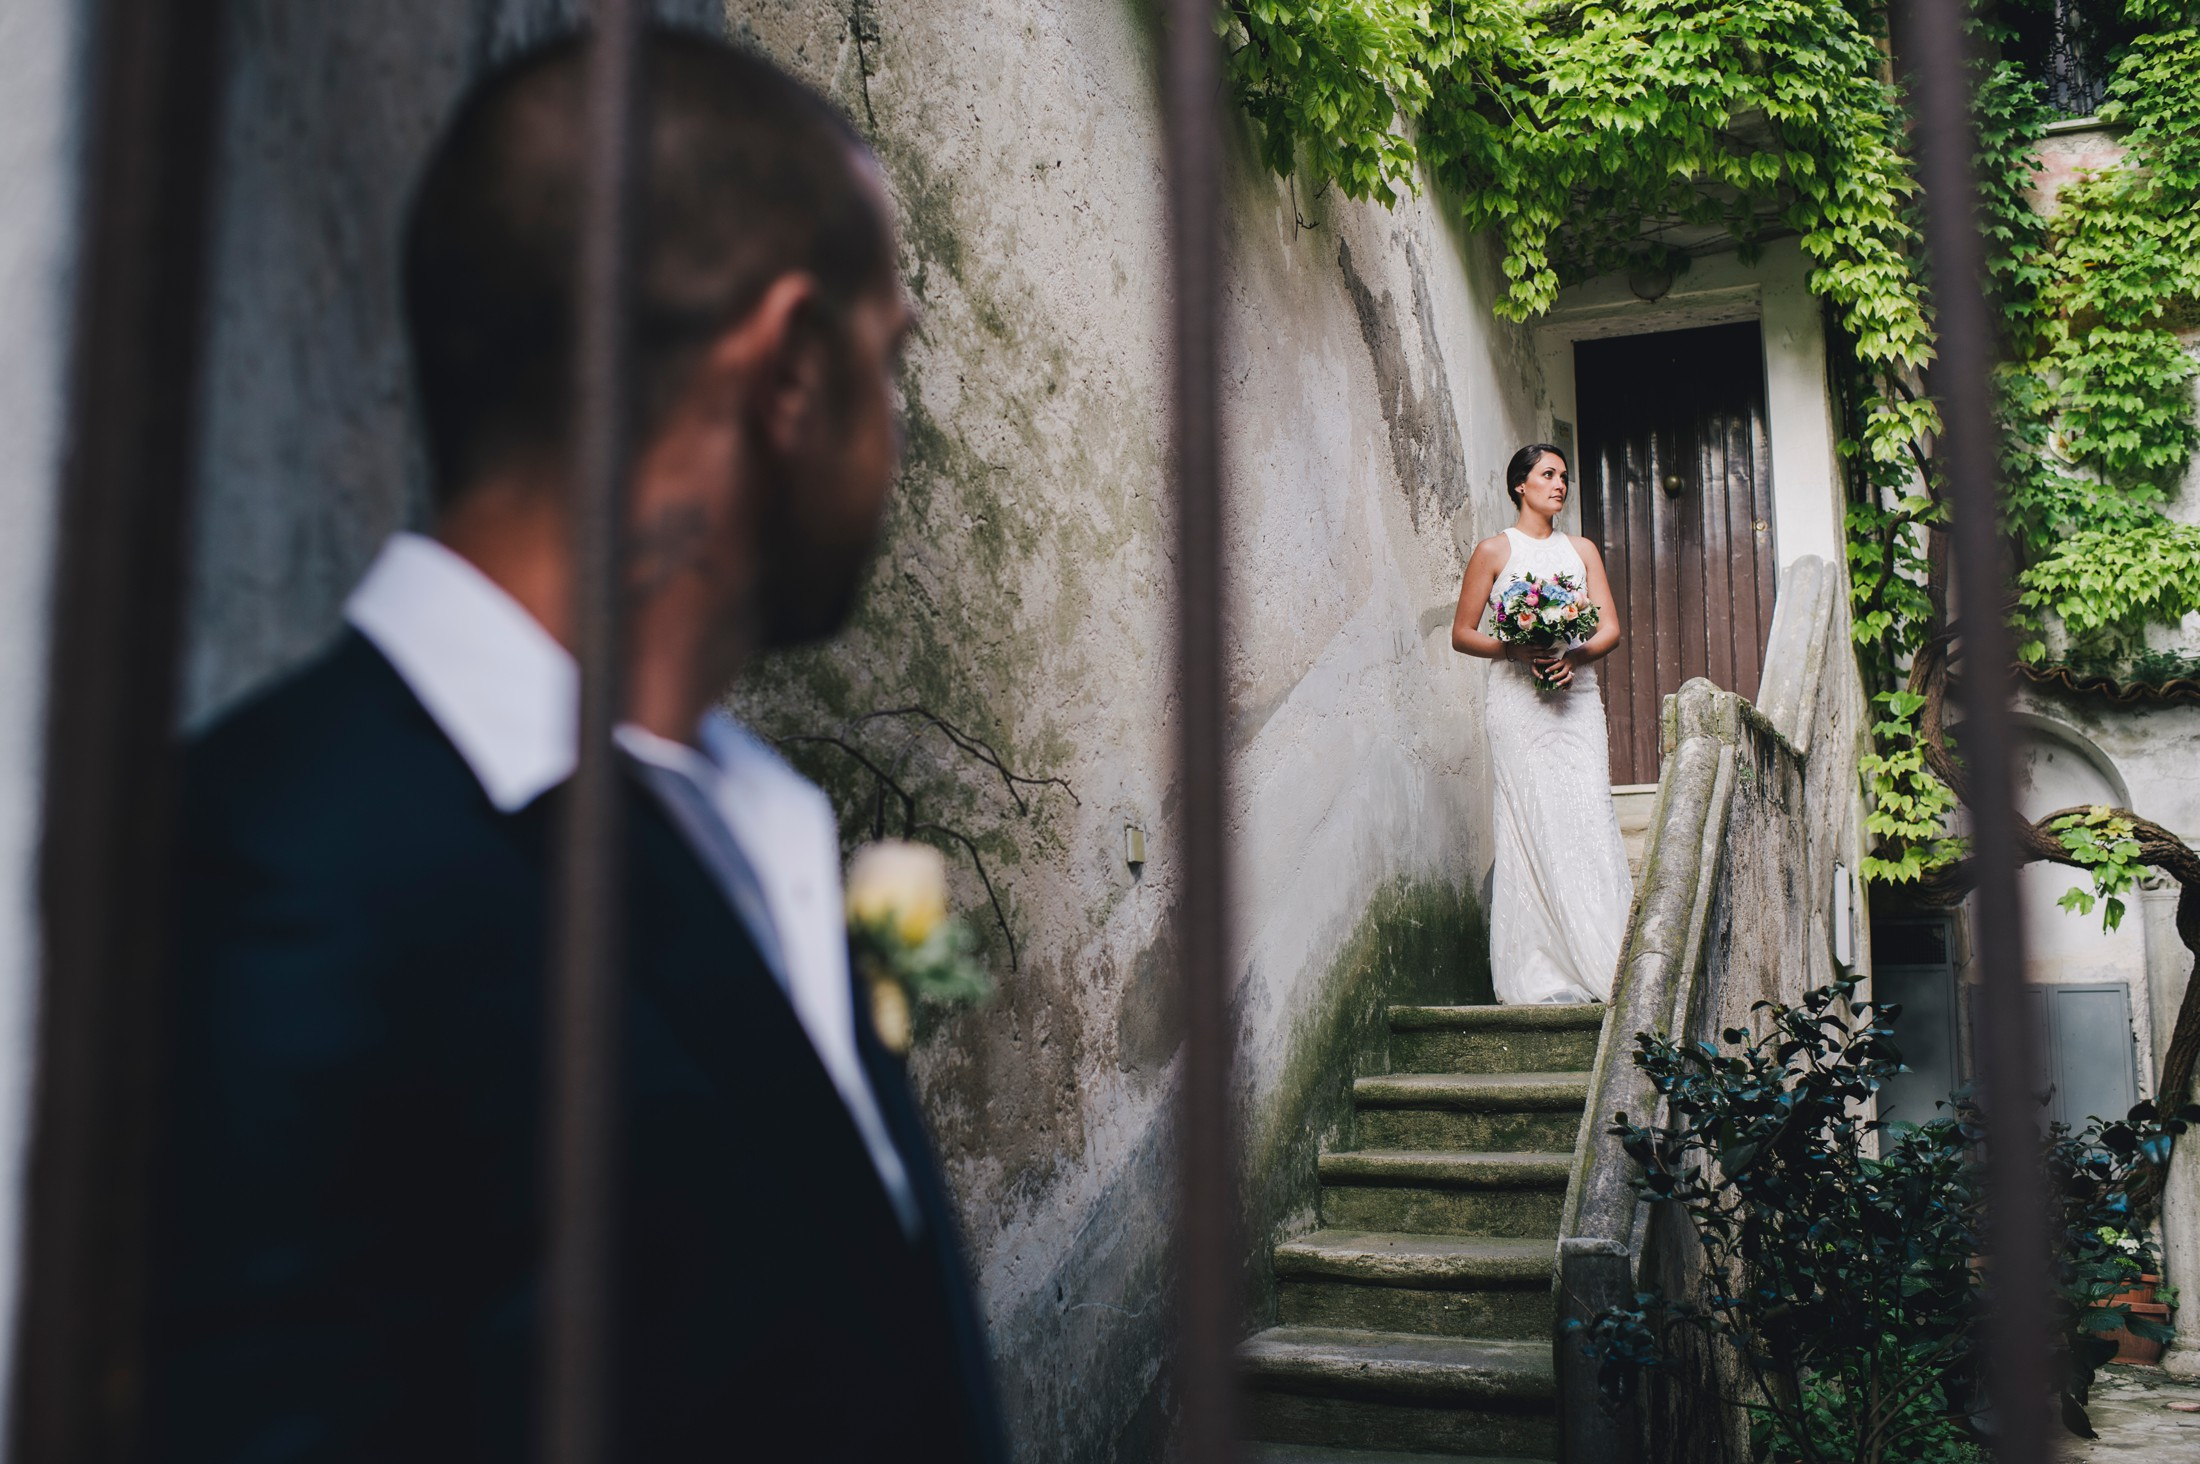 the bride on a stairs